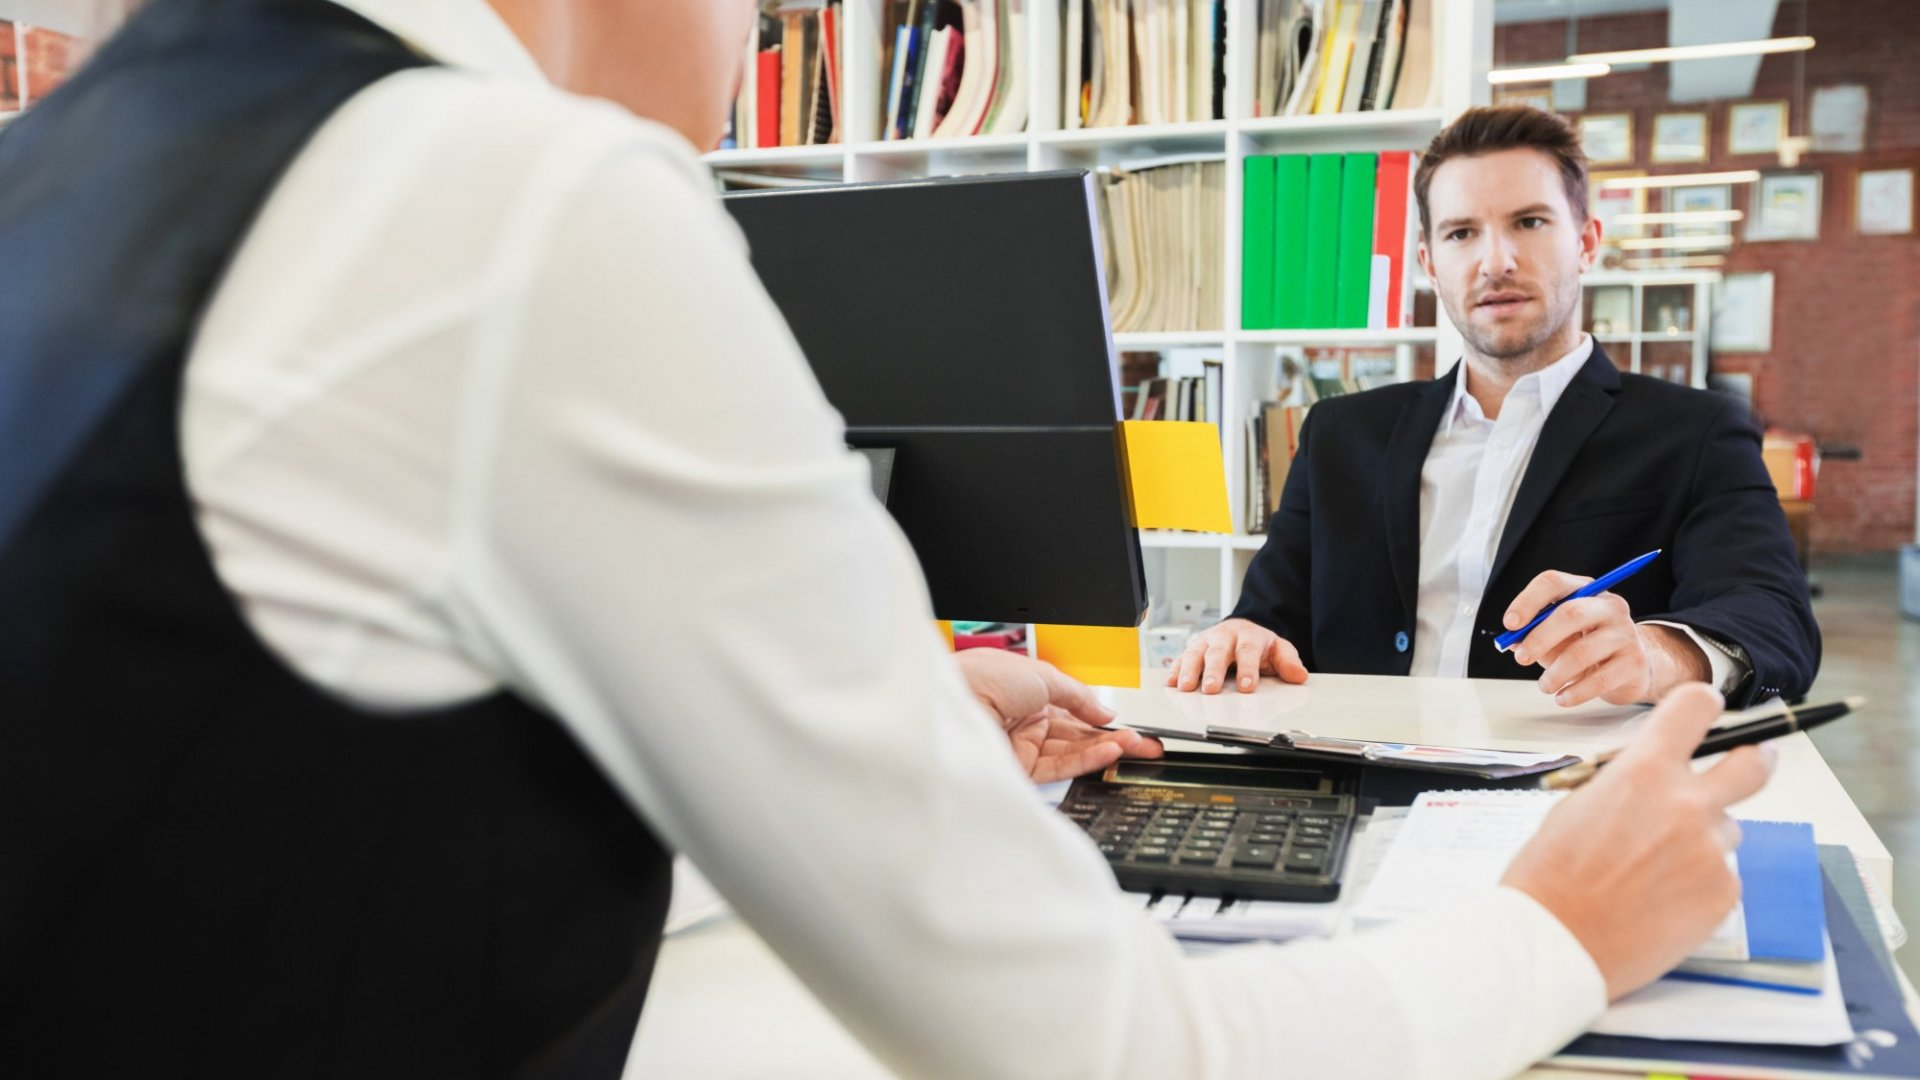 5 Job Interview Questions You've Absolutely Got to Nail